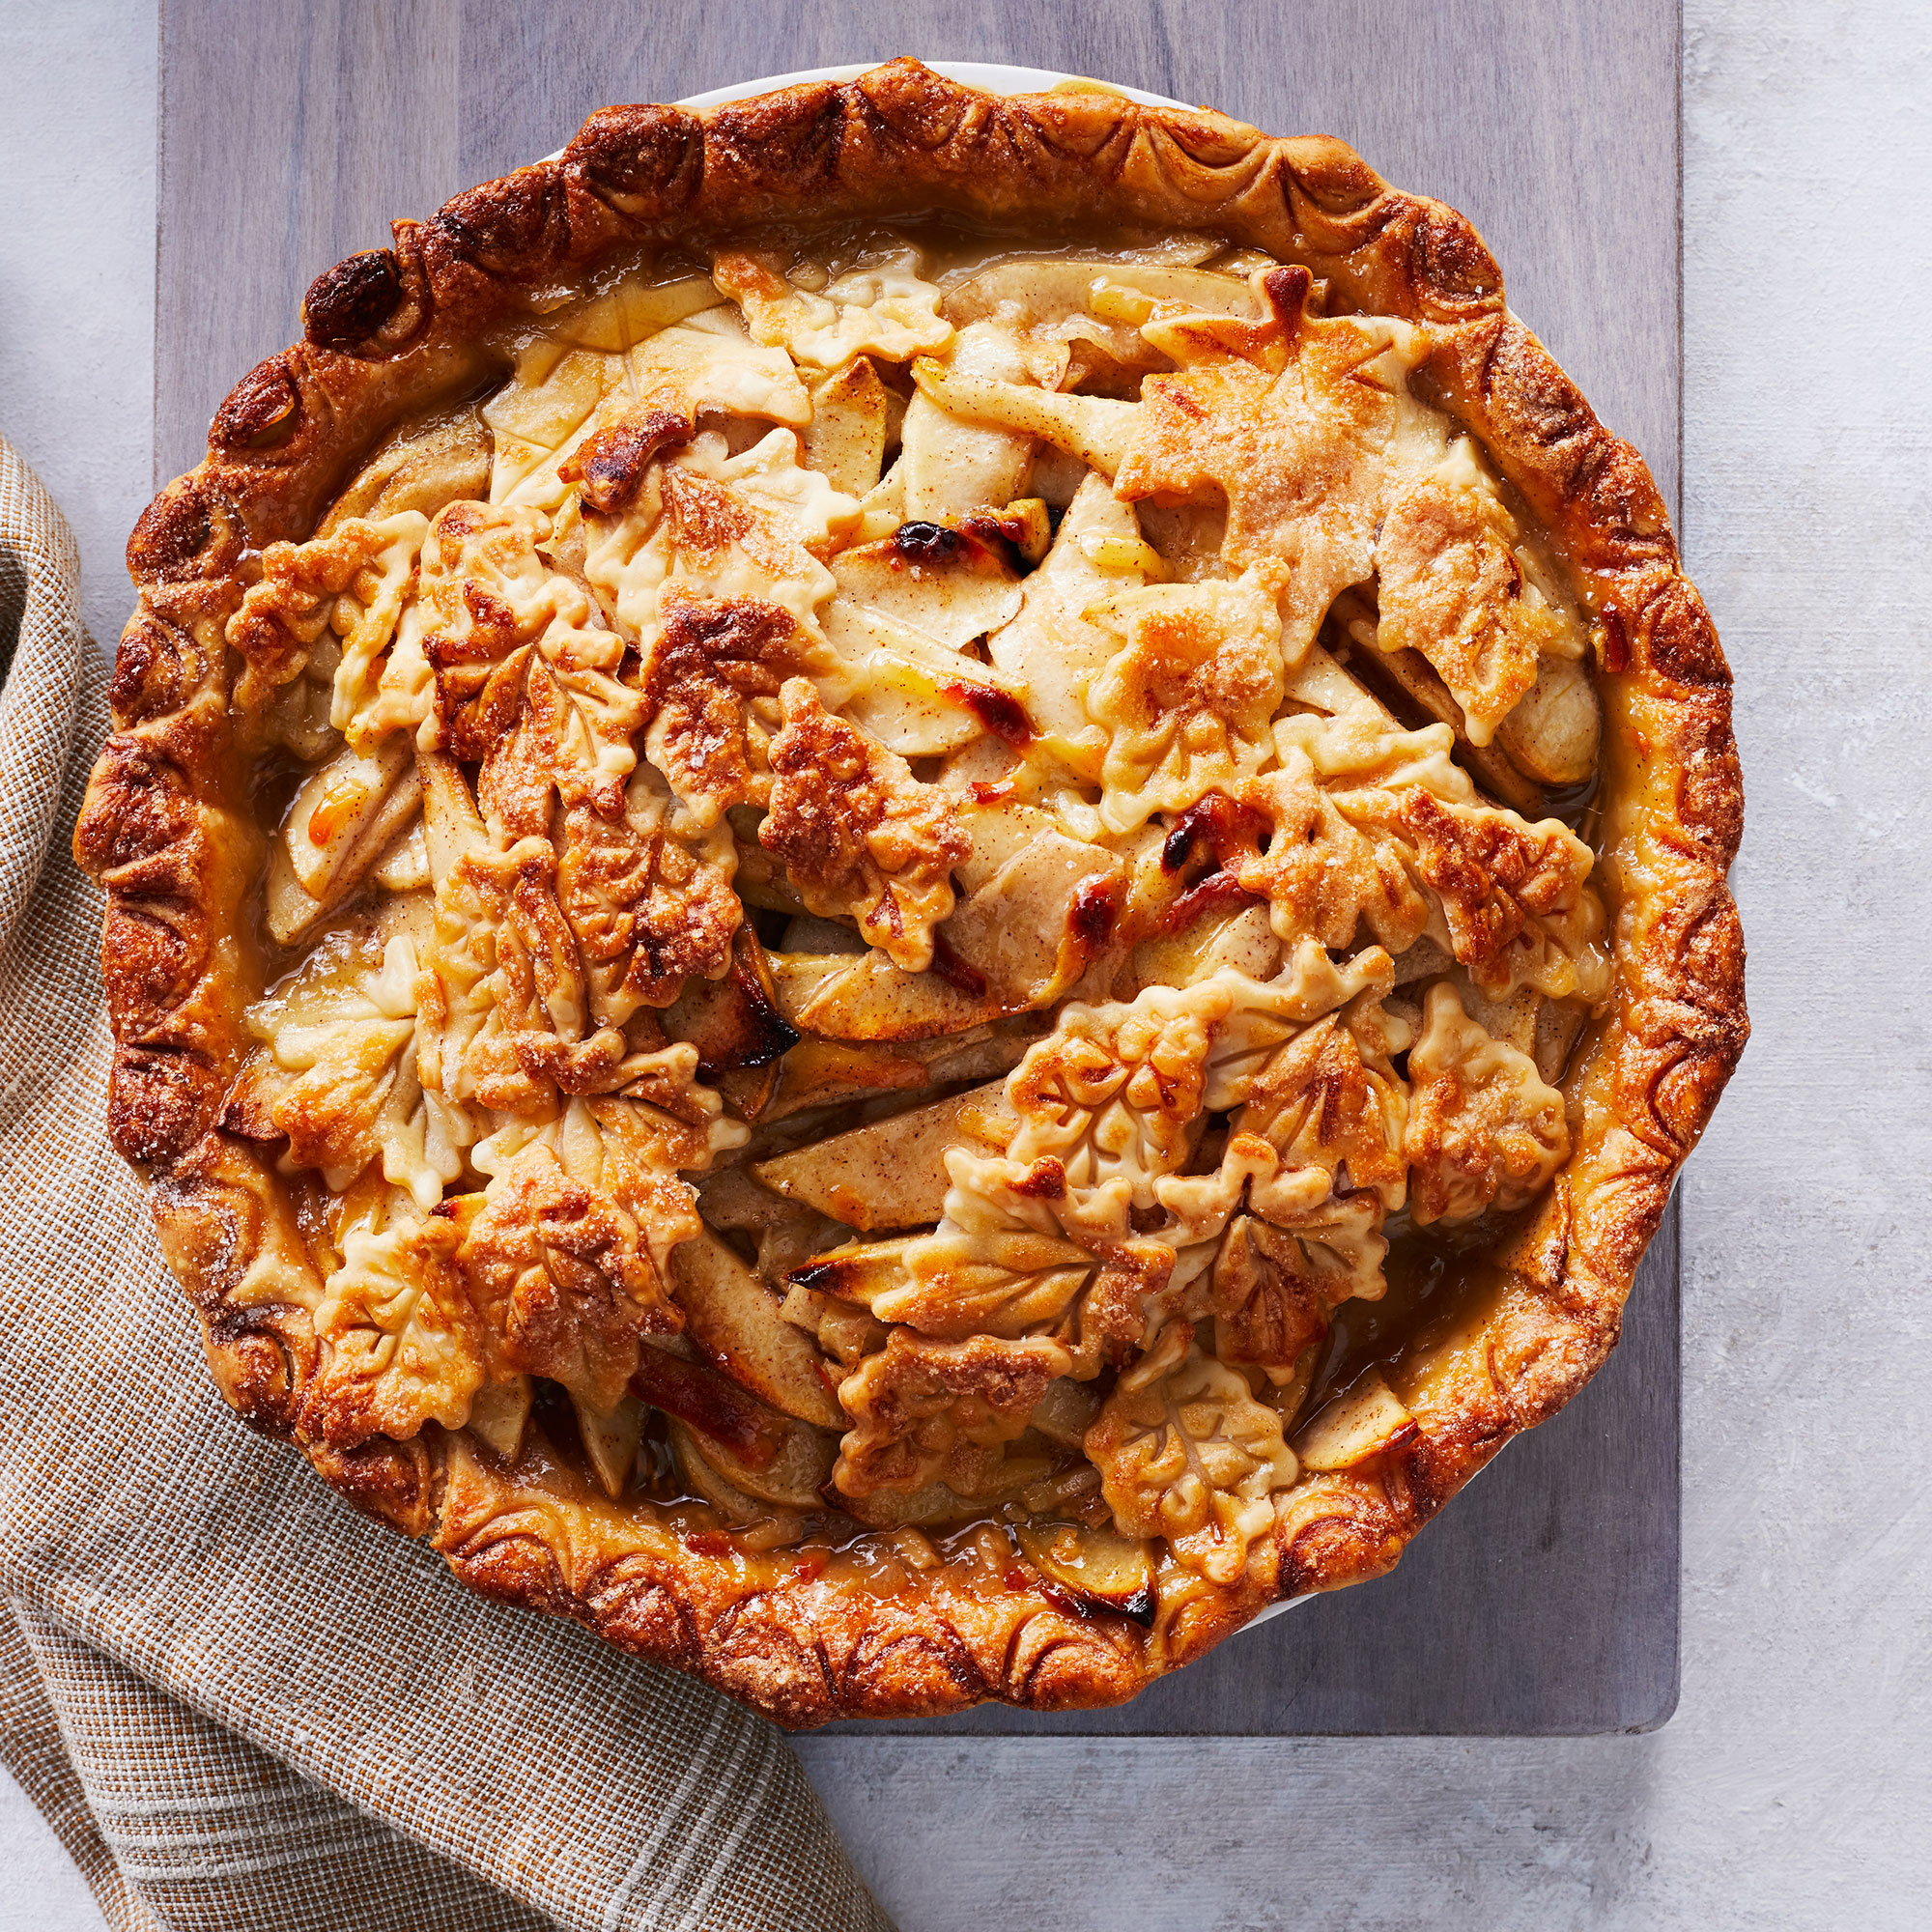 Cheddar Apple-Pear Pie